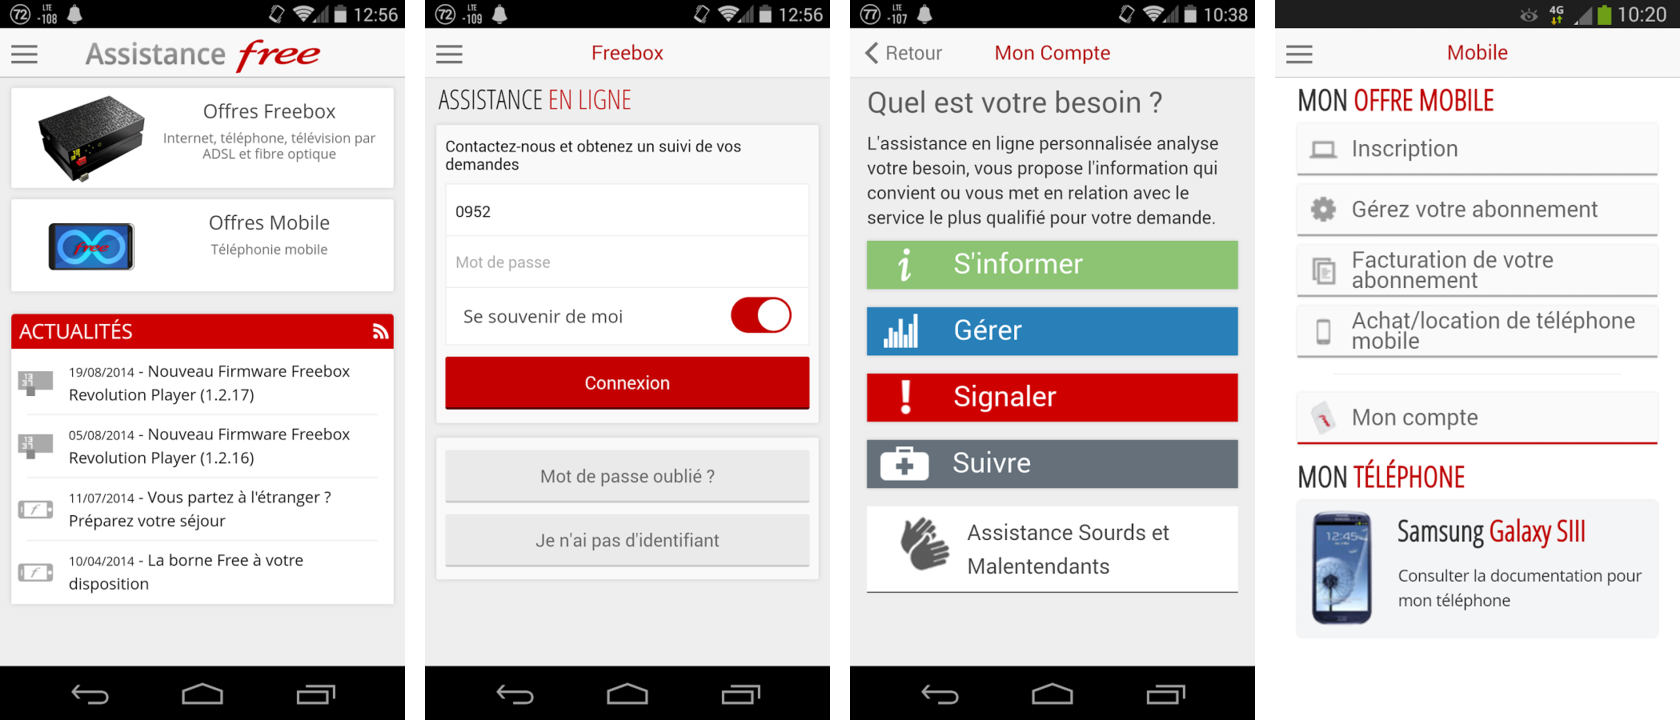 Assistance Free app officielle